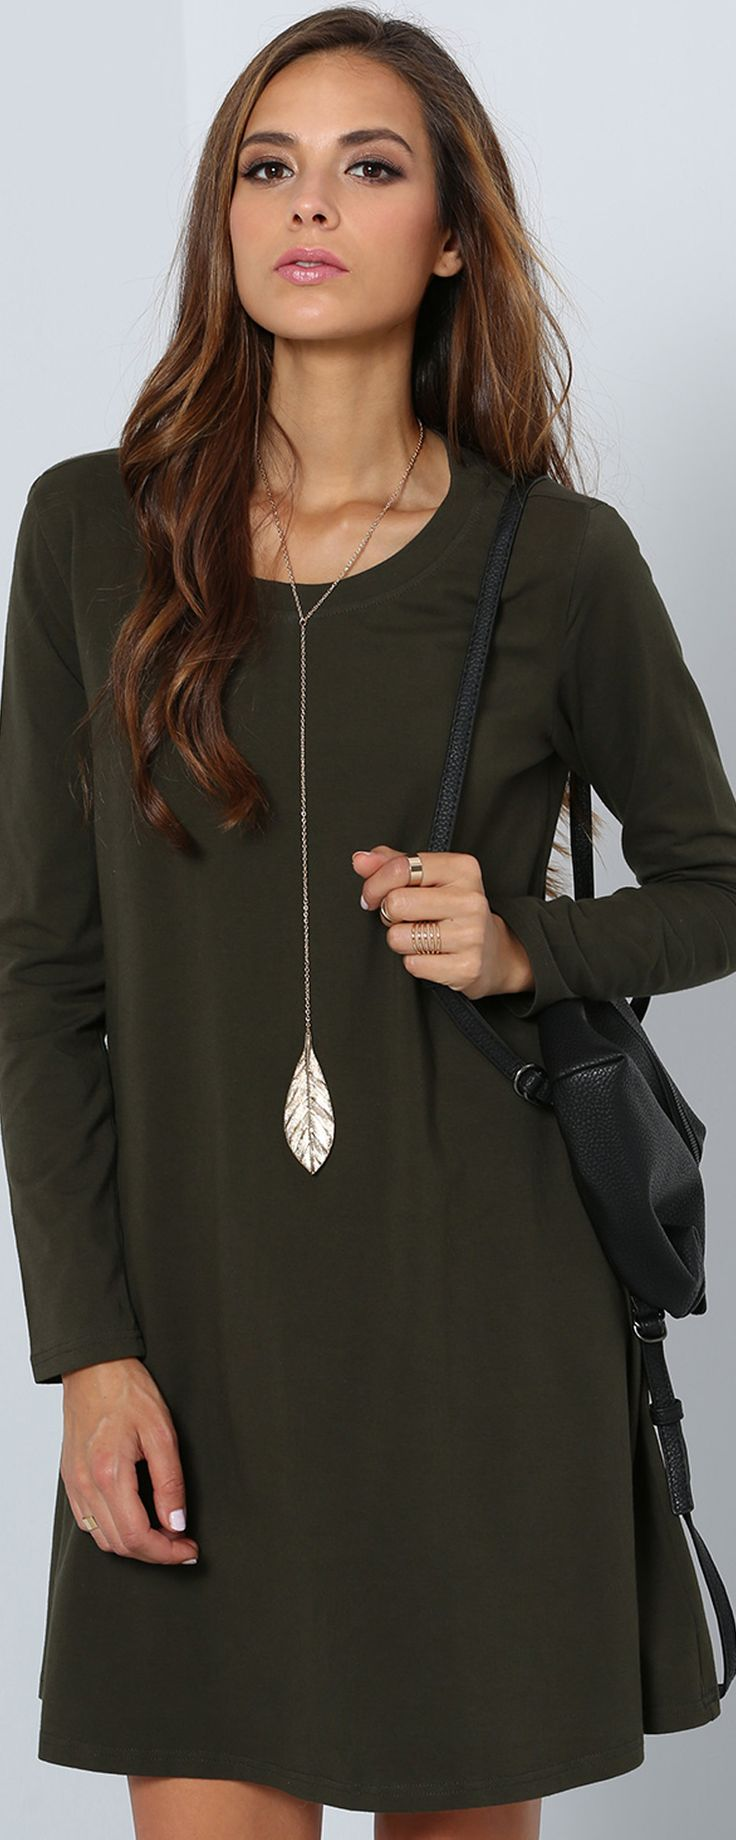 Are you prepared for this comfort fall? Bring this short jersey dress with your heels to get a easy style fix. This basic casual one is made in dark green jersey ,square neck,Long Sleeve and shift Silhouette meet your fashion need.Find more favorite shift dress at SHEIN.com.